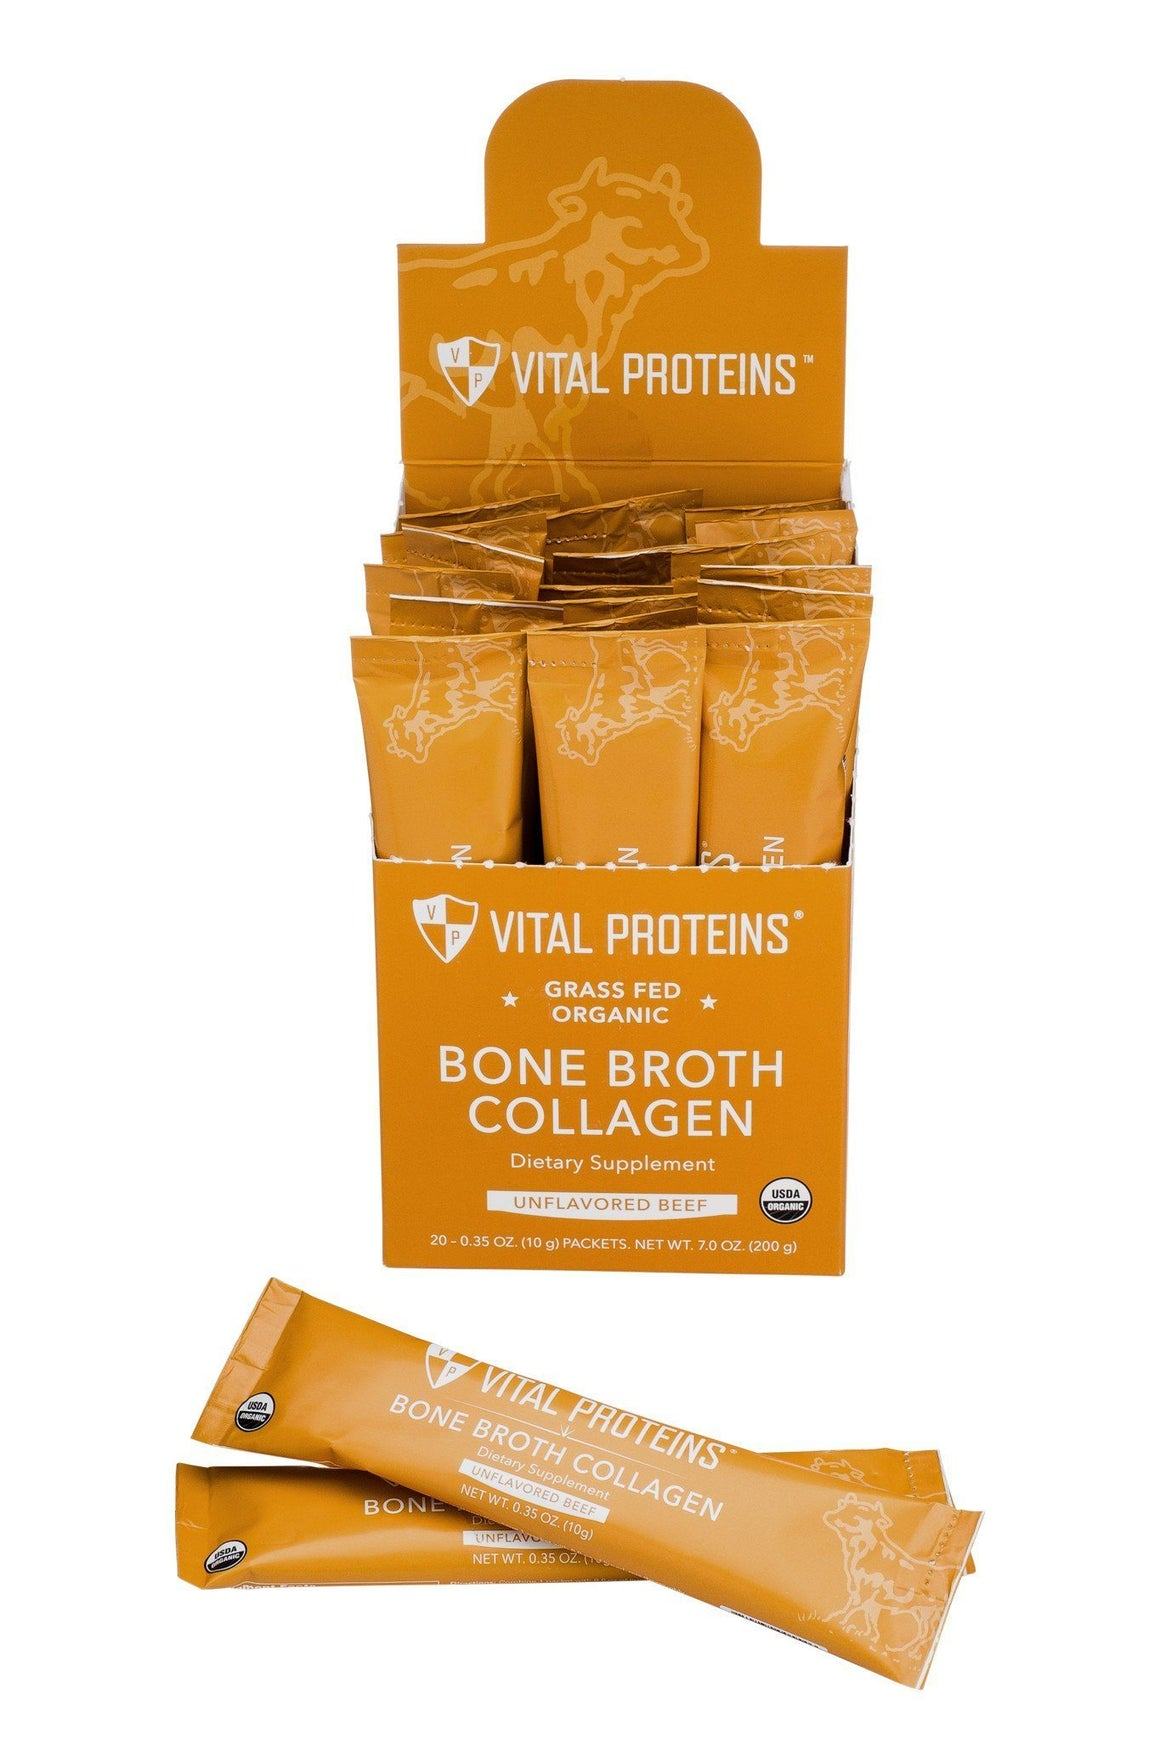 Organic, Grass-Fed Beef Bone Broth Collagen - 20 Stick Pack